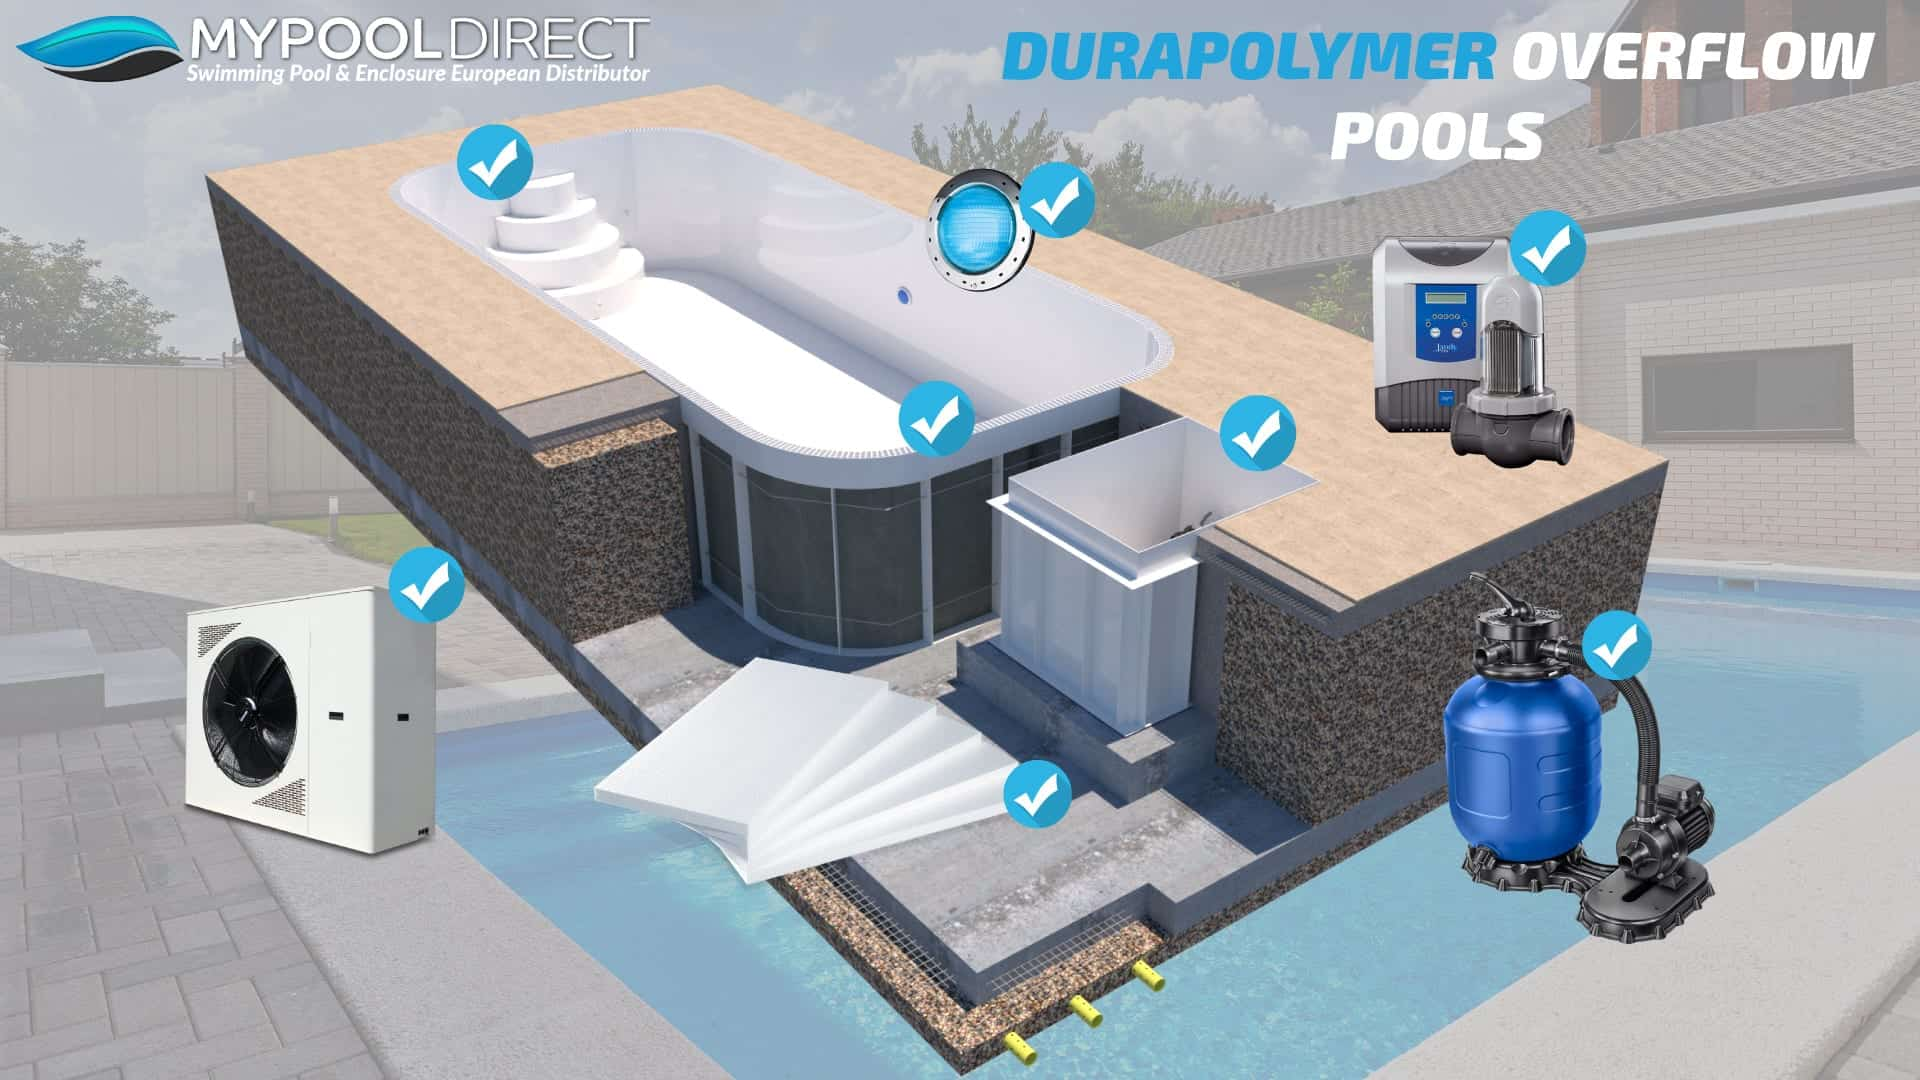 Dura Polymer OVEFLOW Pool Kit Items Available